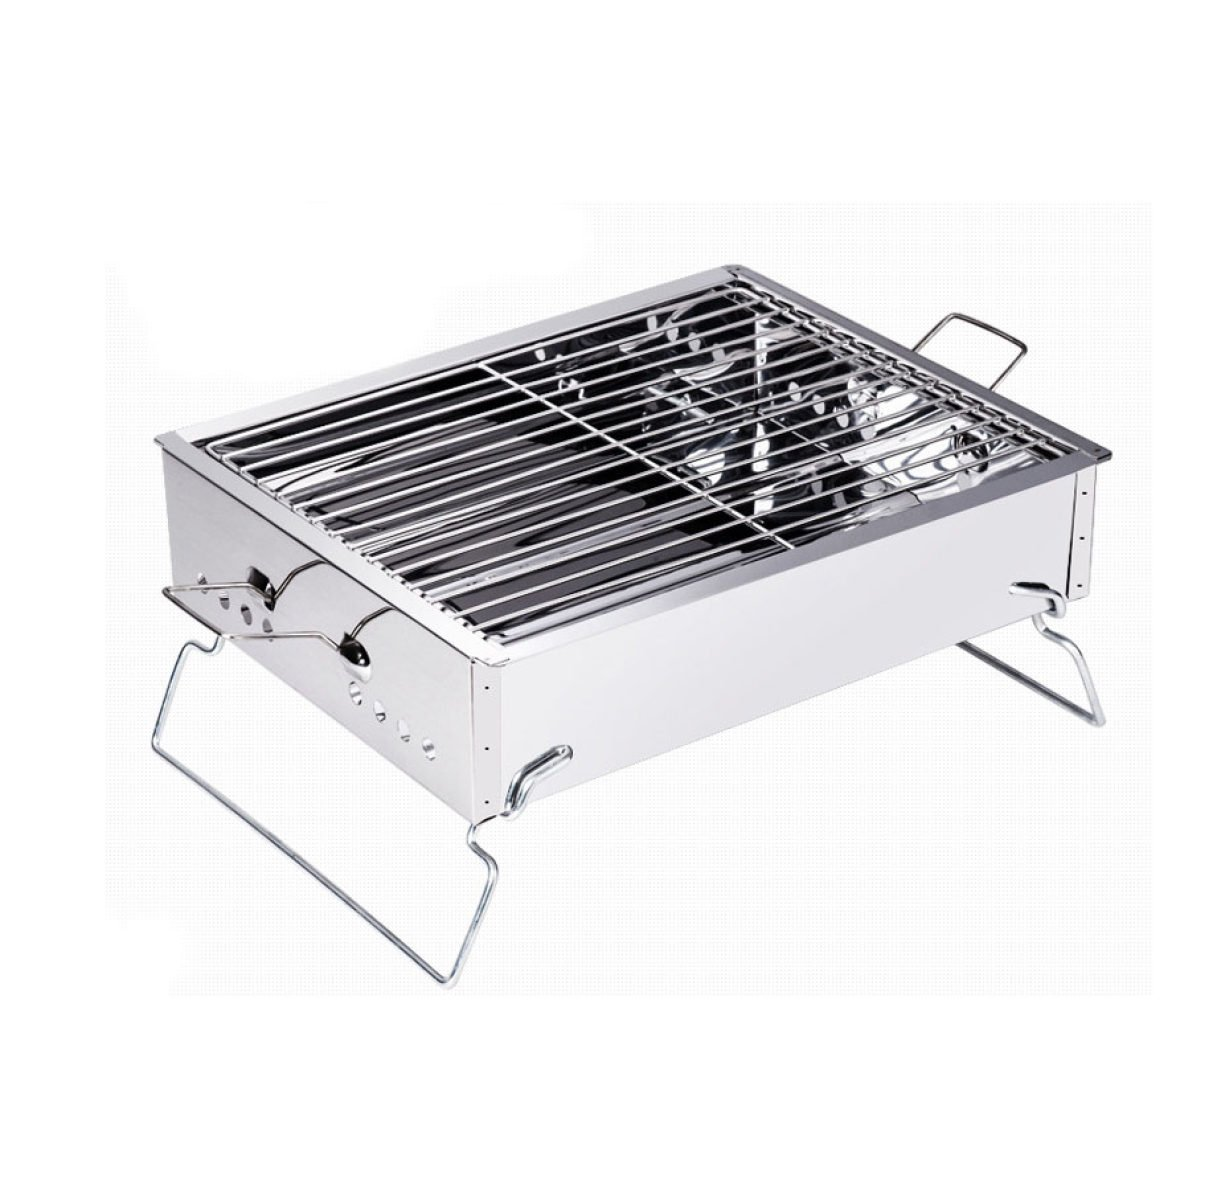 HAOYUXIAN Outdoor Portable Holzkohle Grill Home Grill Feld Barbecue Box,Grill